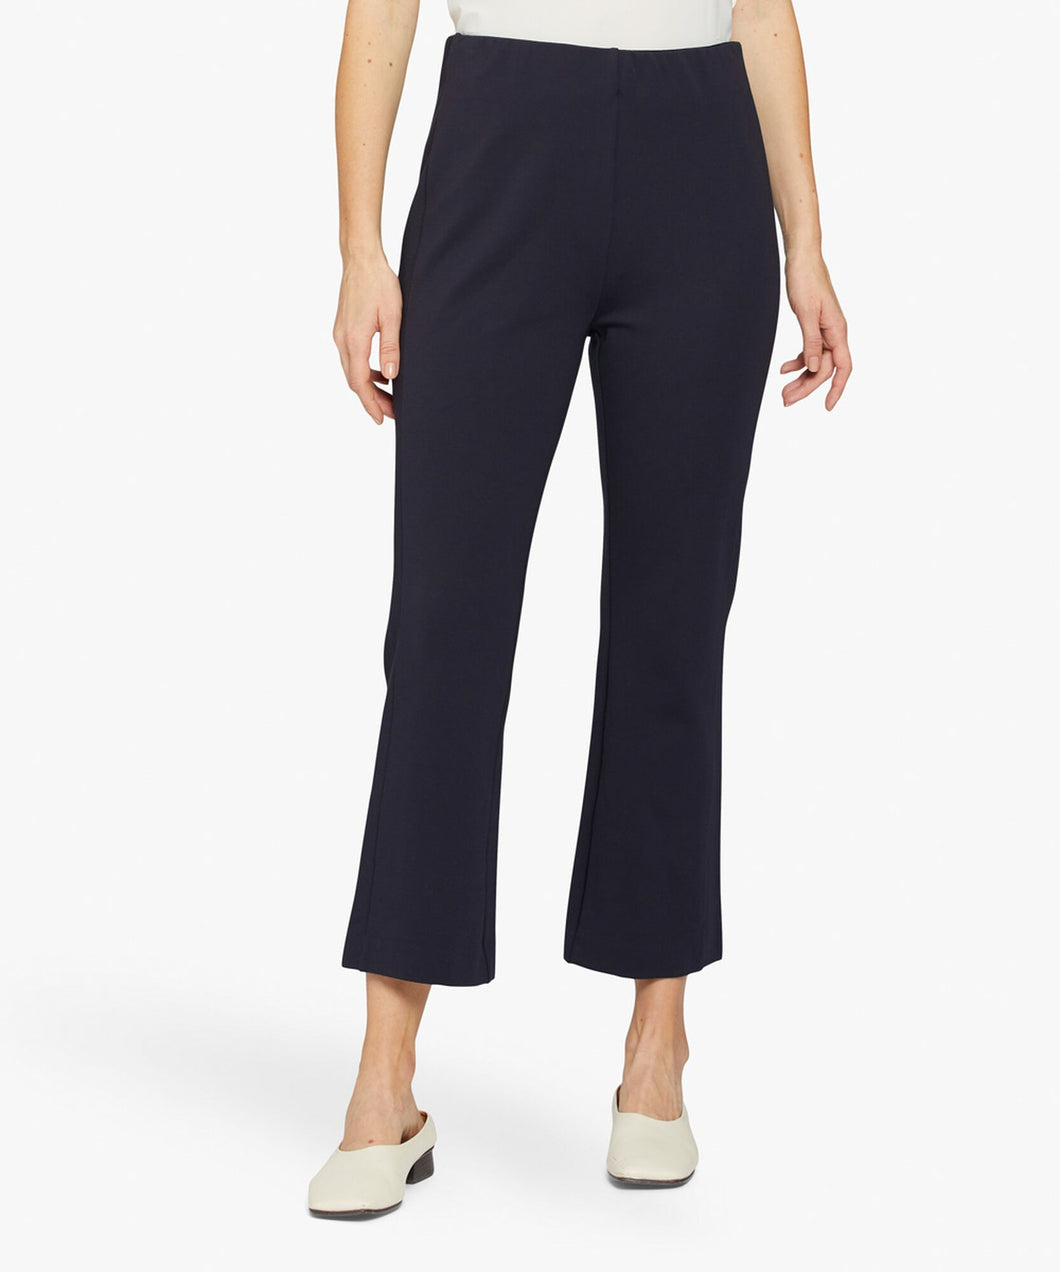 Paba Kick-Flare Trousers in Navy Trousers Masai